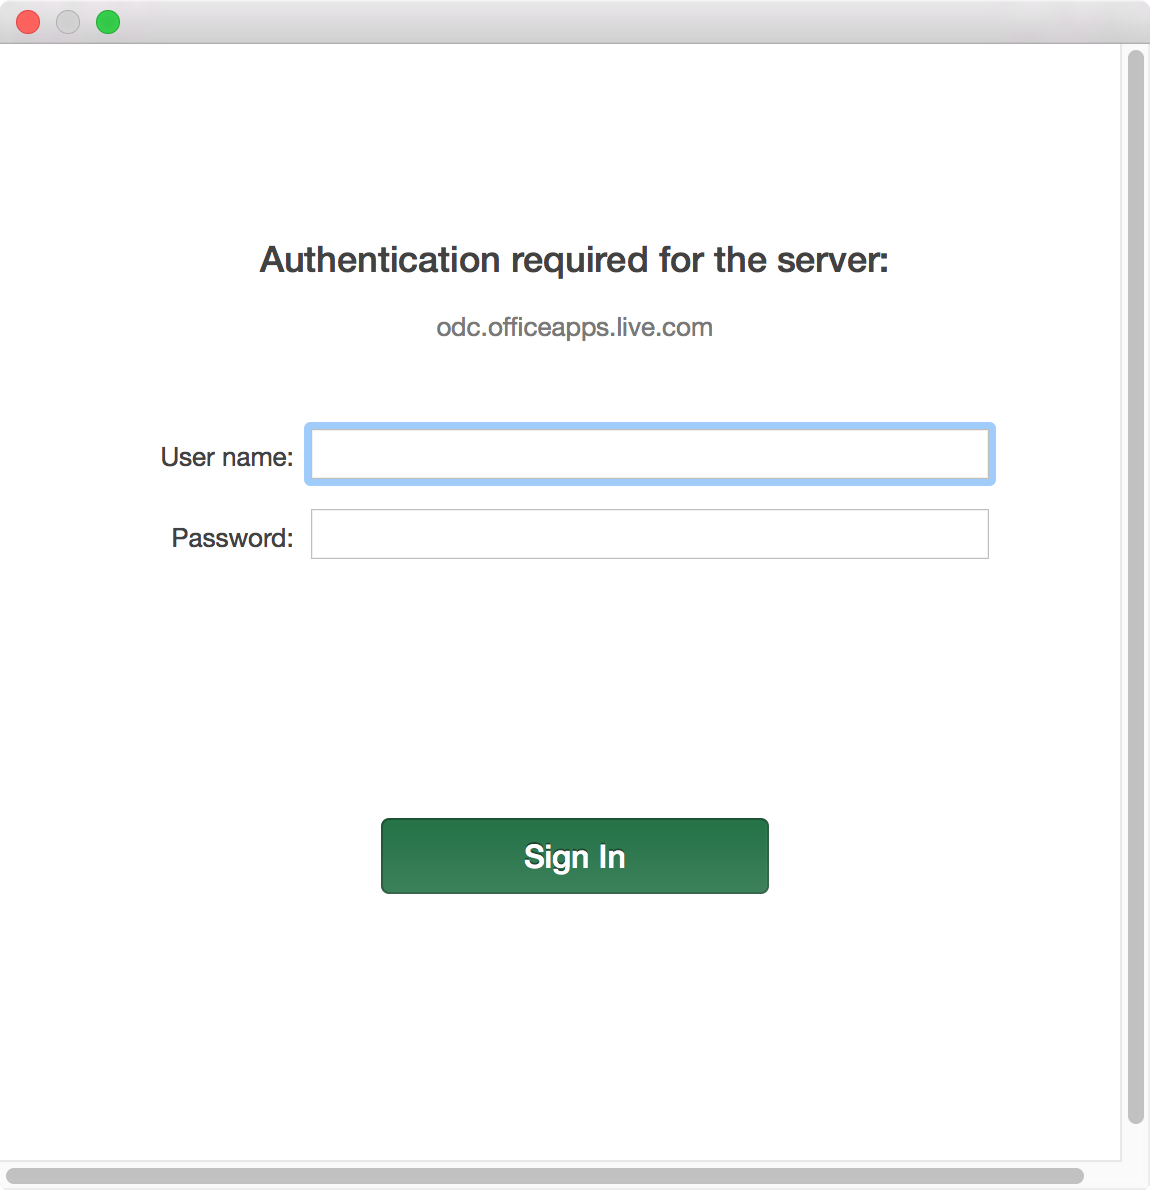 Authentication required for the server